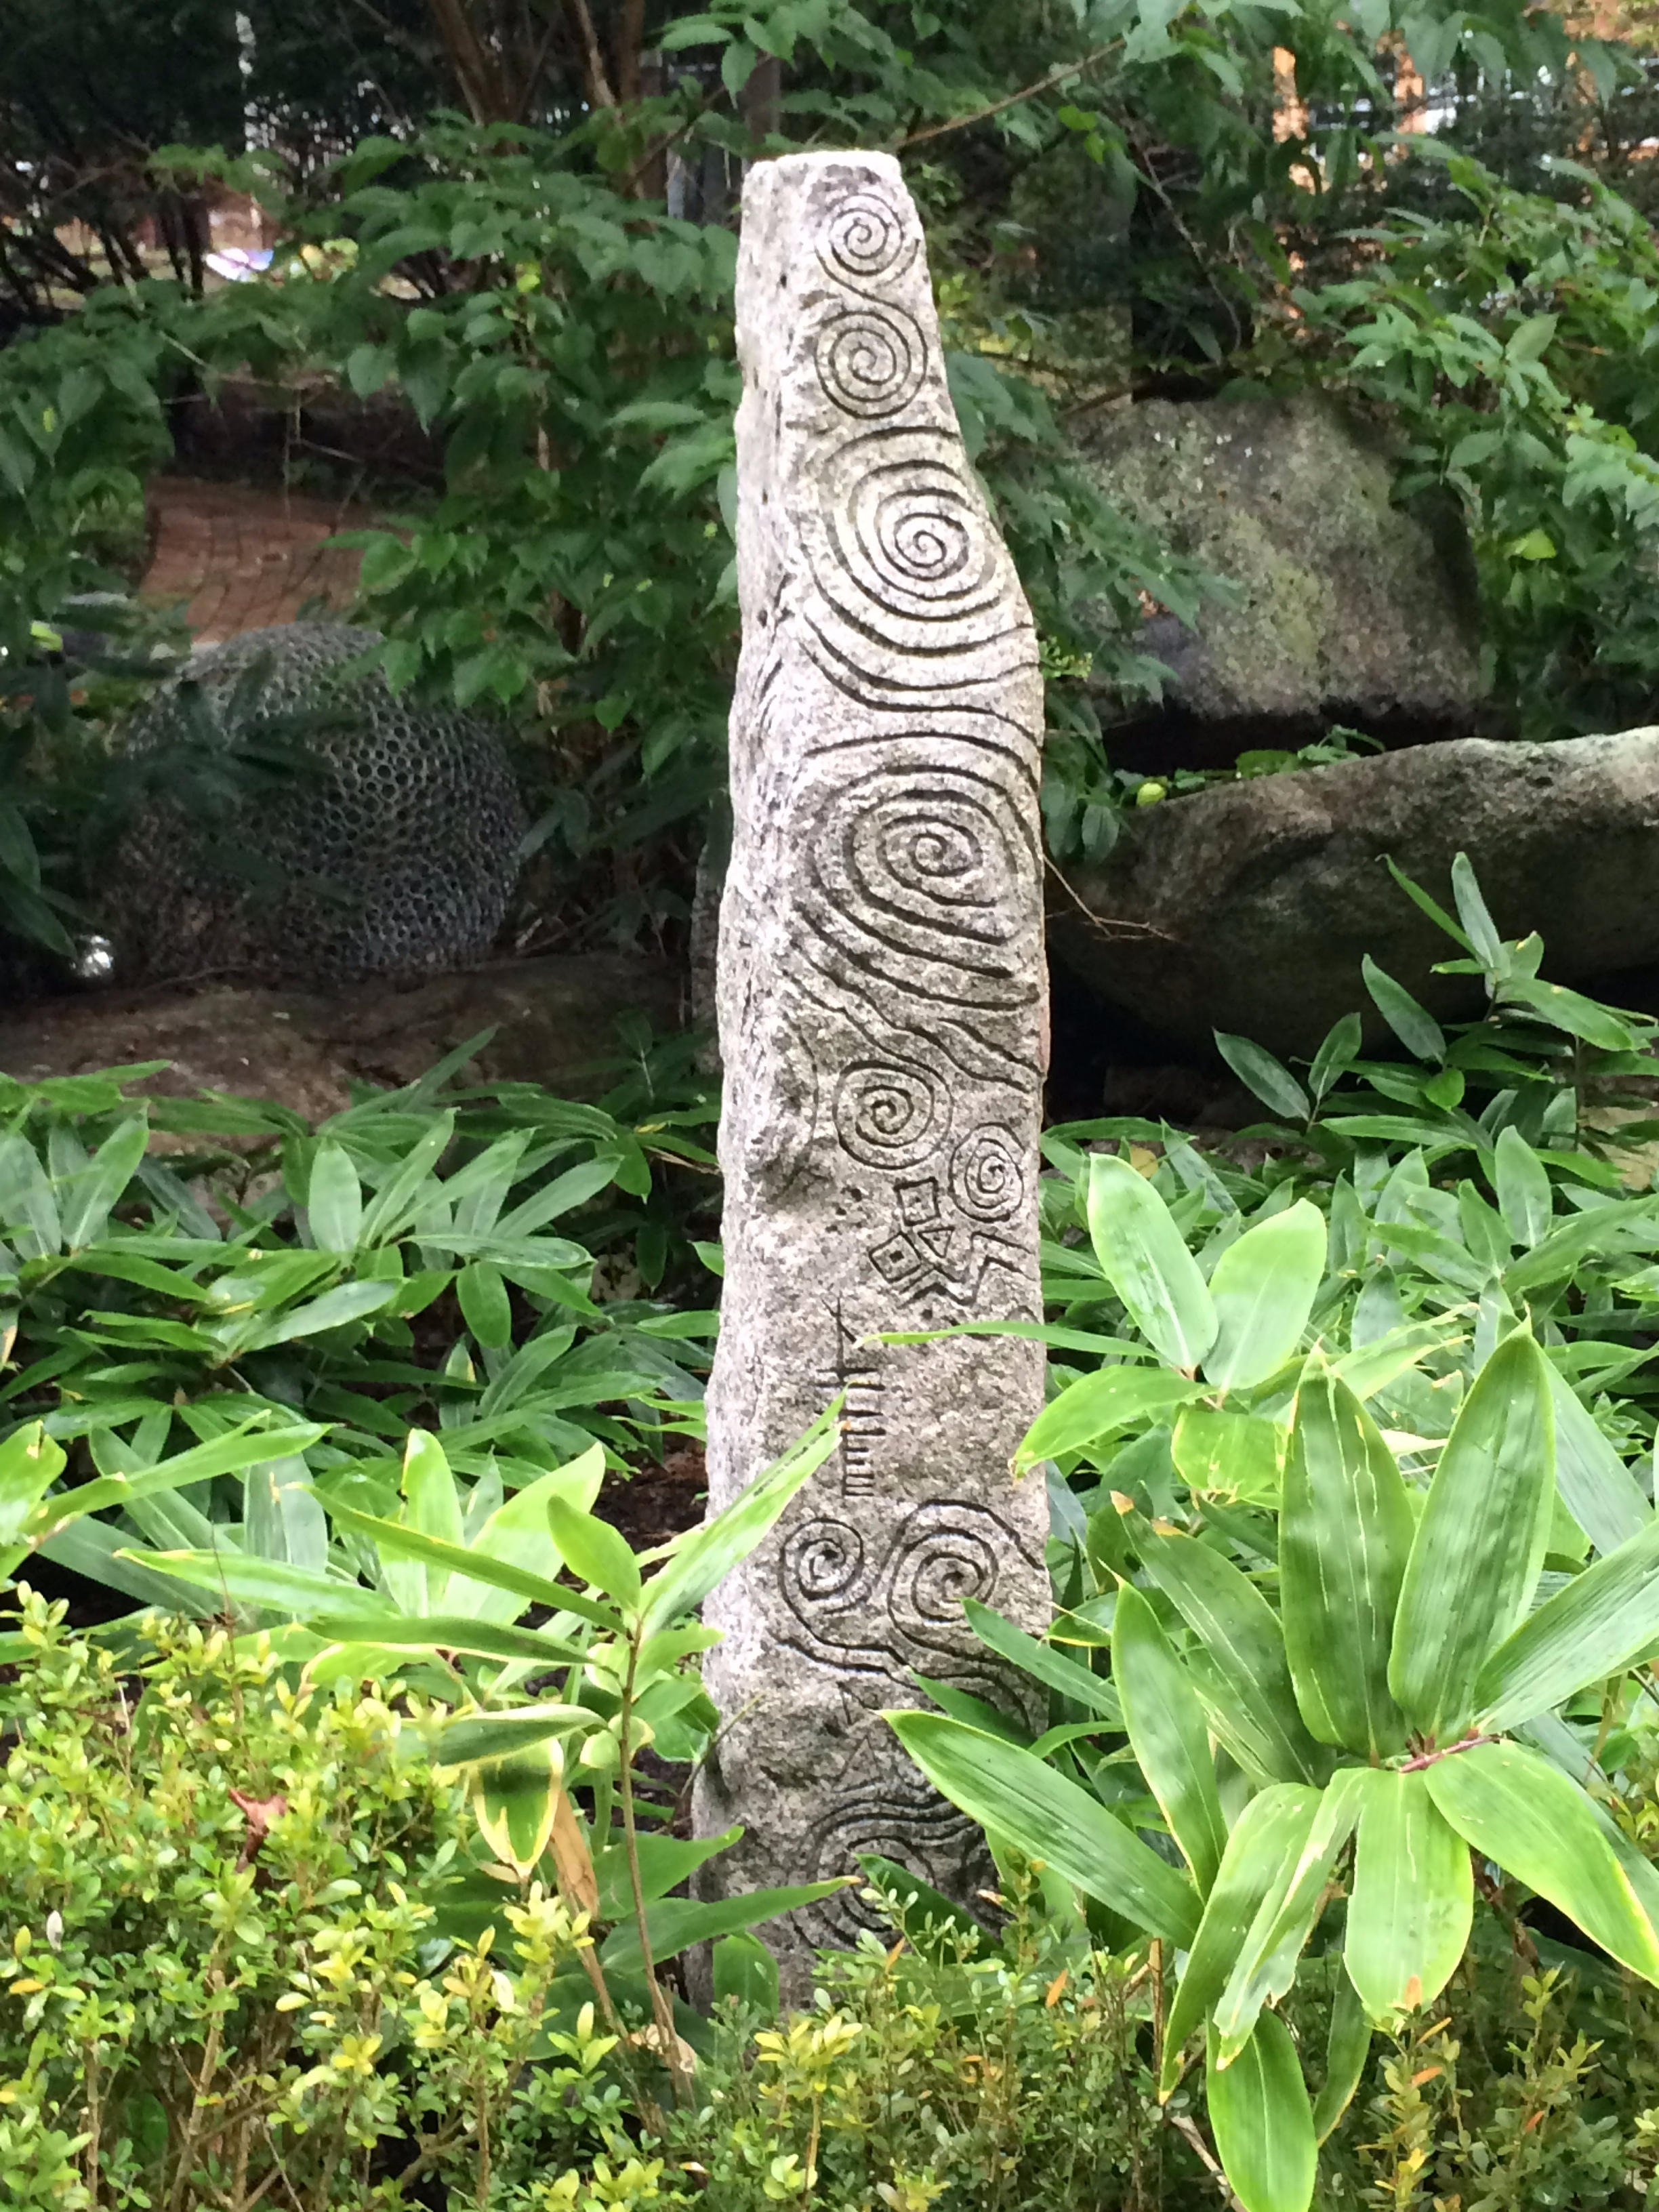 ANAM LOCI - SOUL PLACE STELA- ORIGINALLY FEATURED IN THE TOURISM IRELAND GARDEN AT THE NEW ENGLAD FLOWER SHOW IN 2007 AND A THREE MONTH SHOW 'ROCK ON' AT THE GARDEN IN THE WOODS MA.